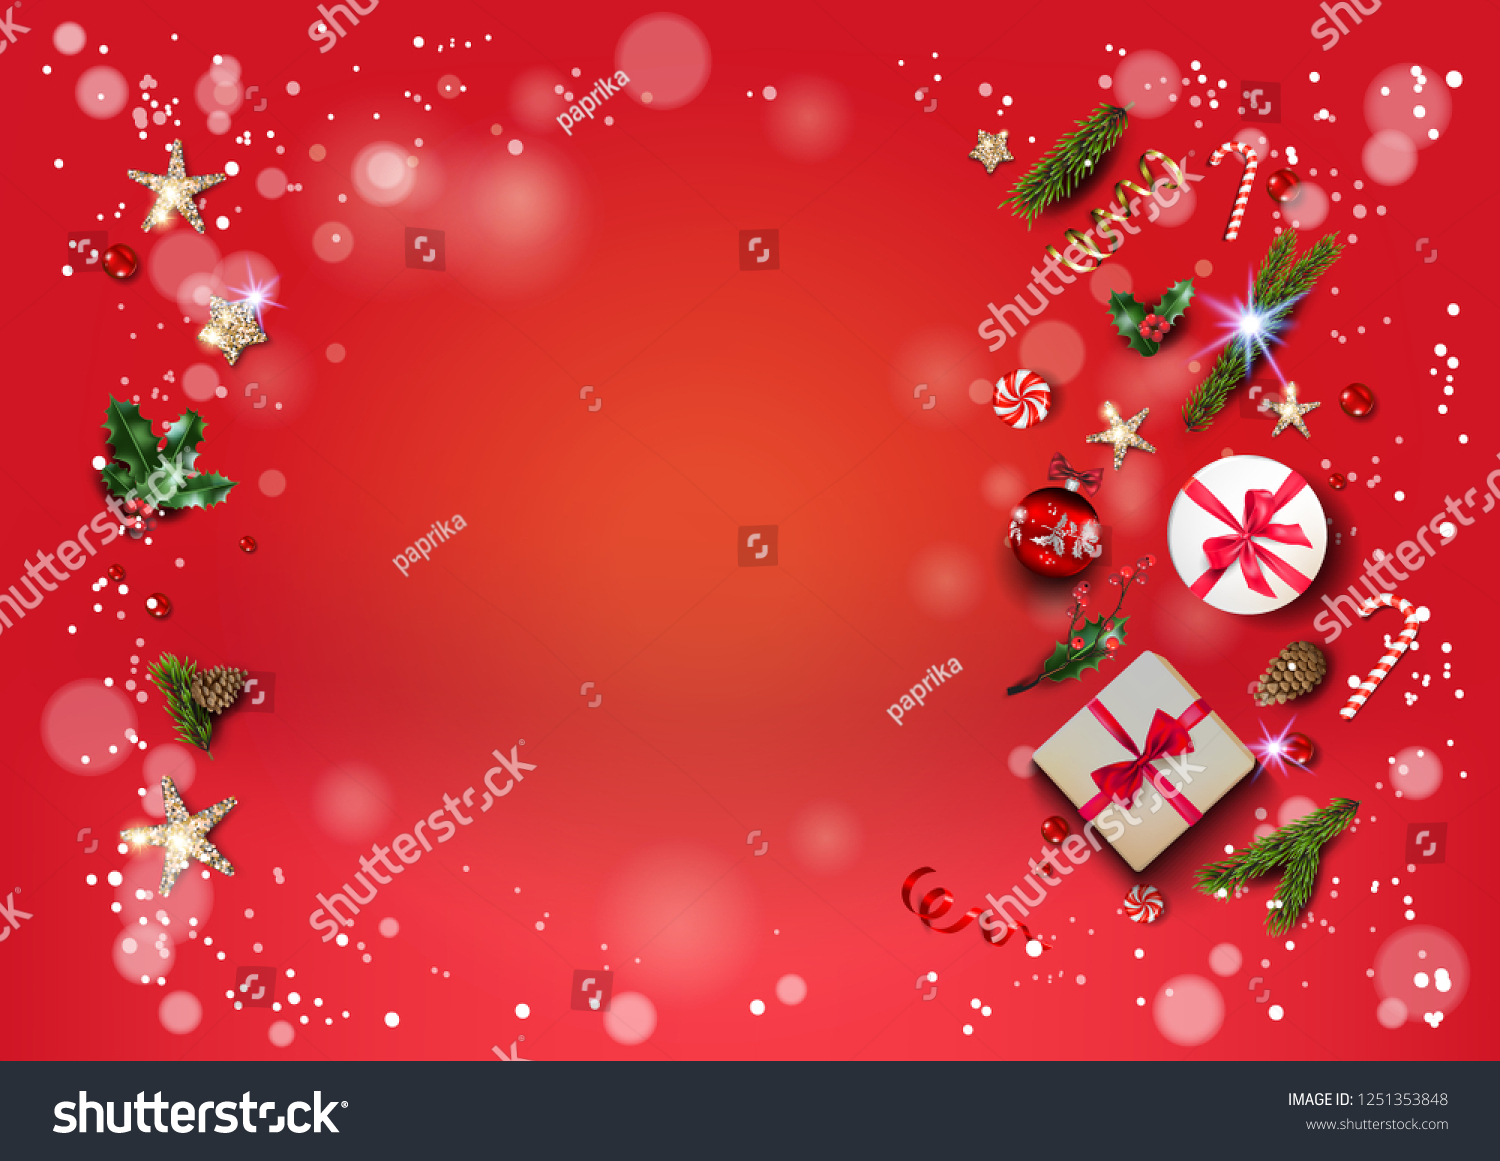 Bright Red Holiday Illustration Card Christmas Stock Vector